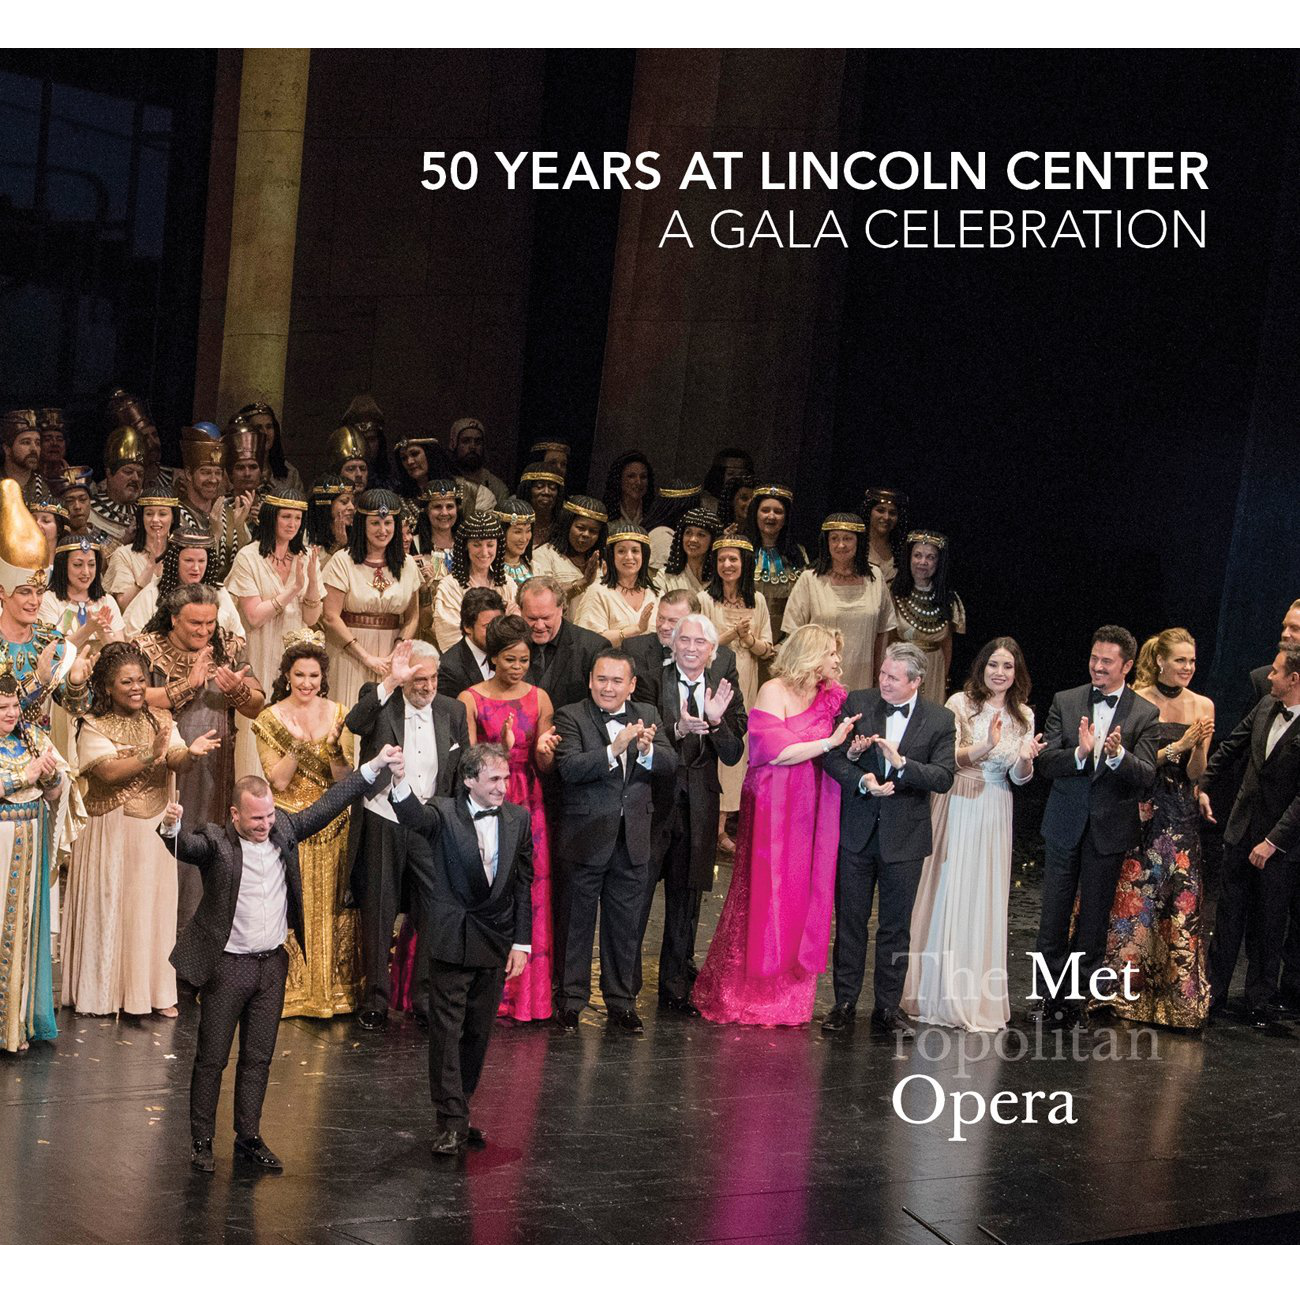 50 Years At Lincoln Center: A Gala Celebration